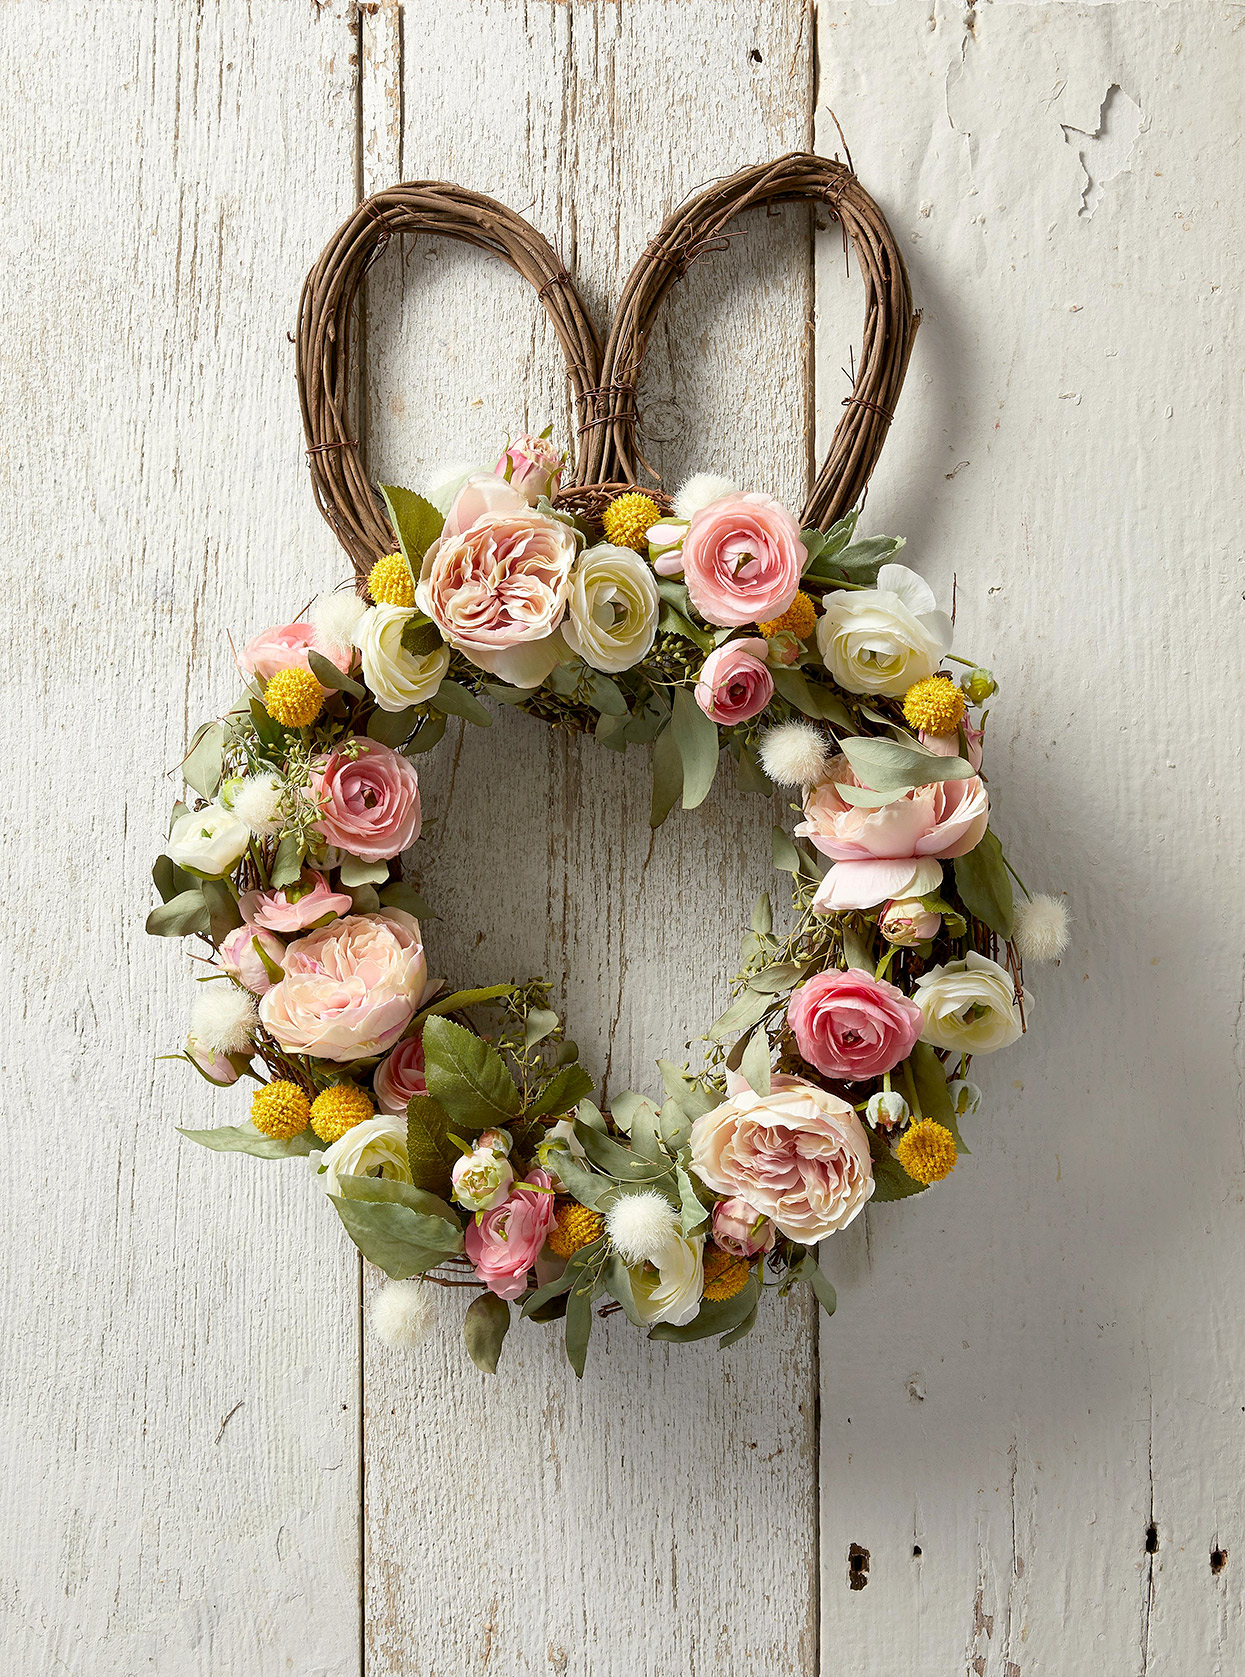 bunny-ears grapevine wreath with pink, white and yellow blooms